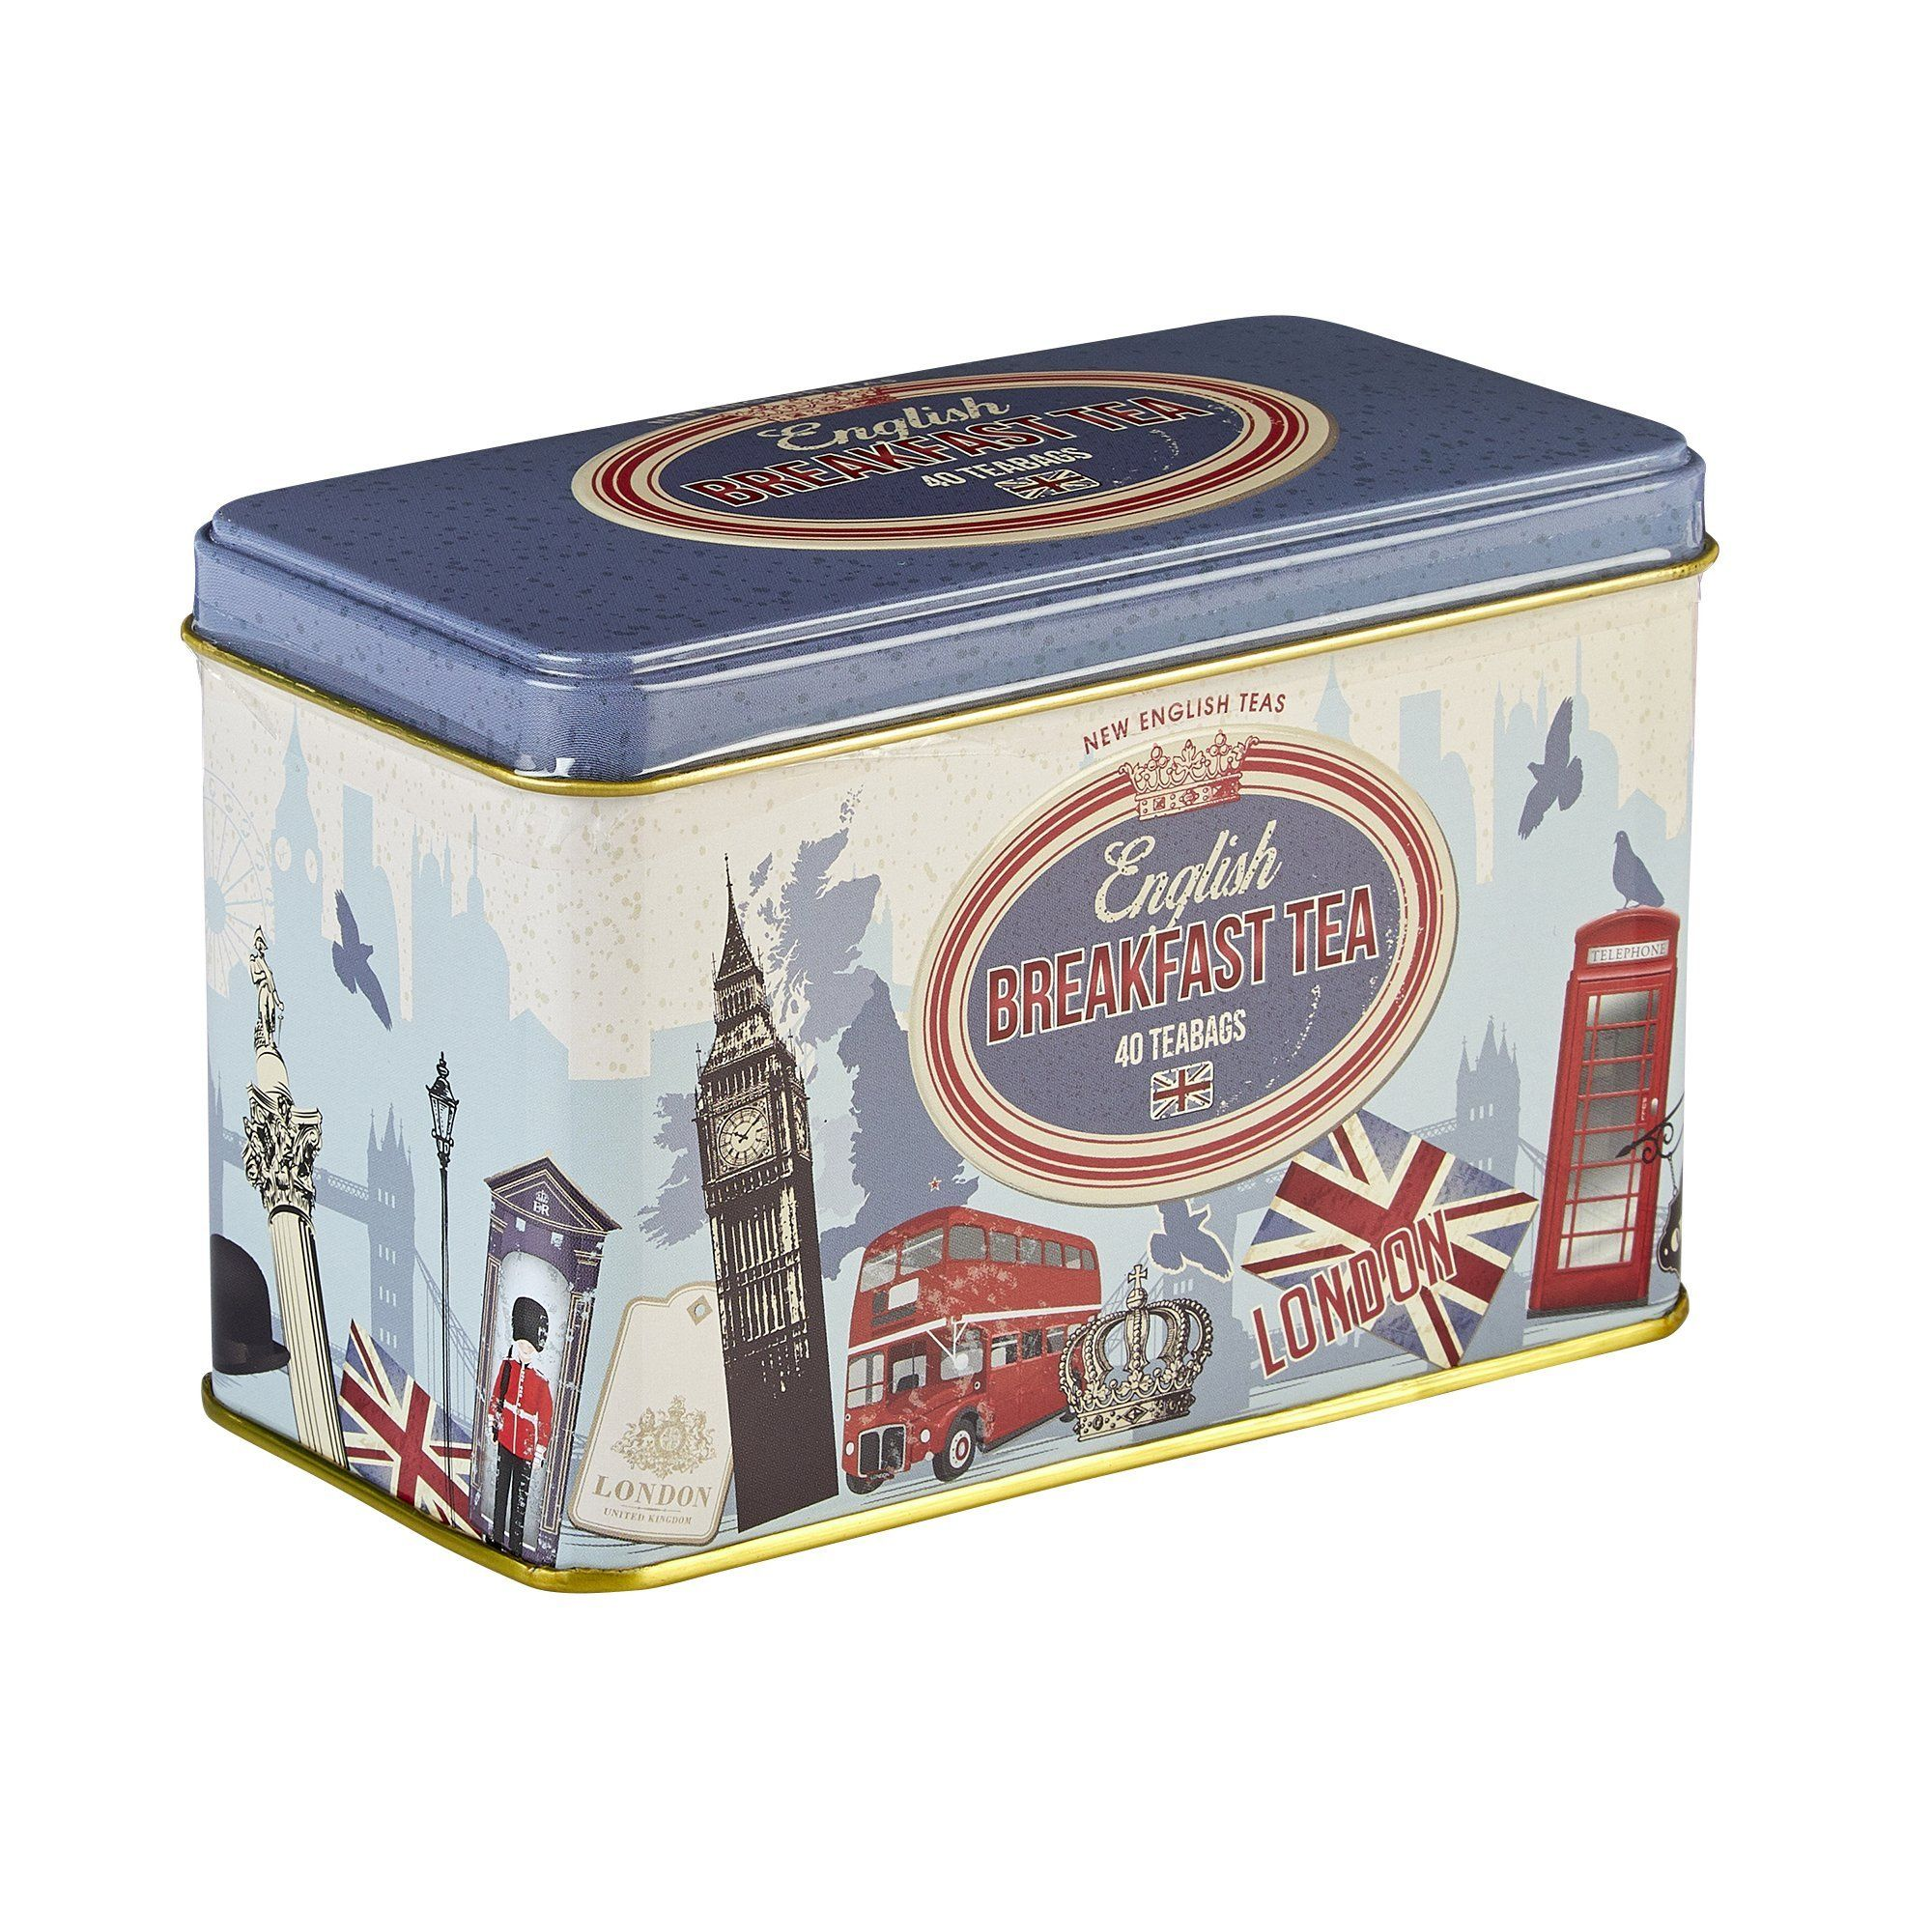 Retro London English Breakfast Tea Tin 40 Teabags Black Tea New English Teas